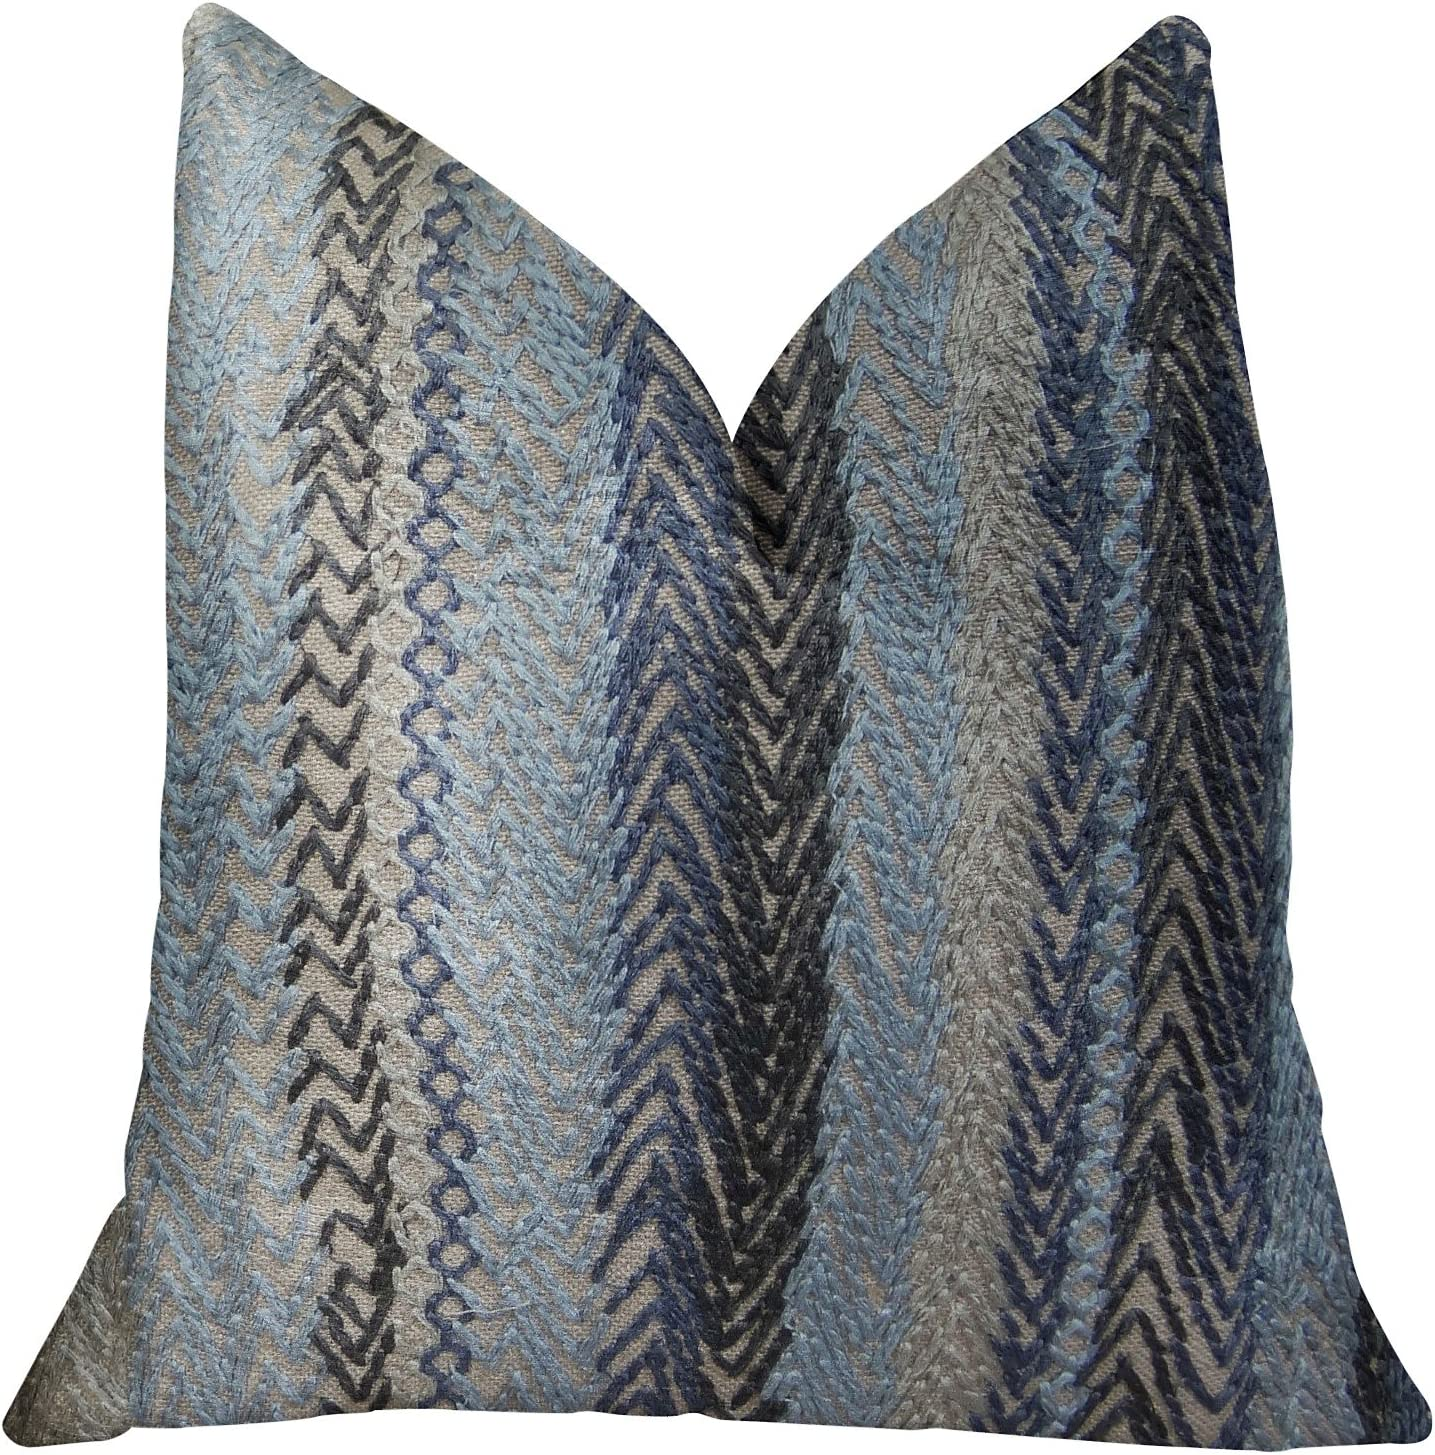 sold out Max 71% OFF Plutus Brands Zigzag Rows Throw Pillow Handmade Graphite